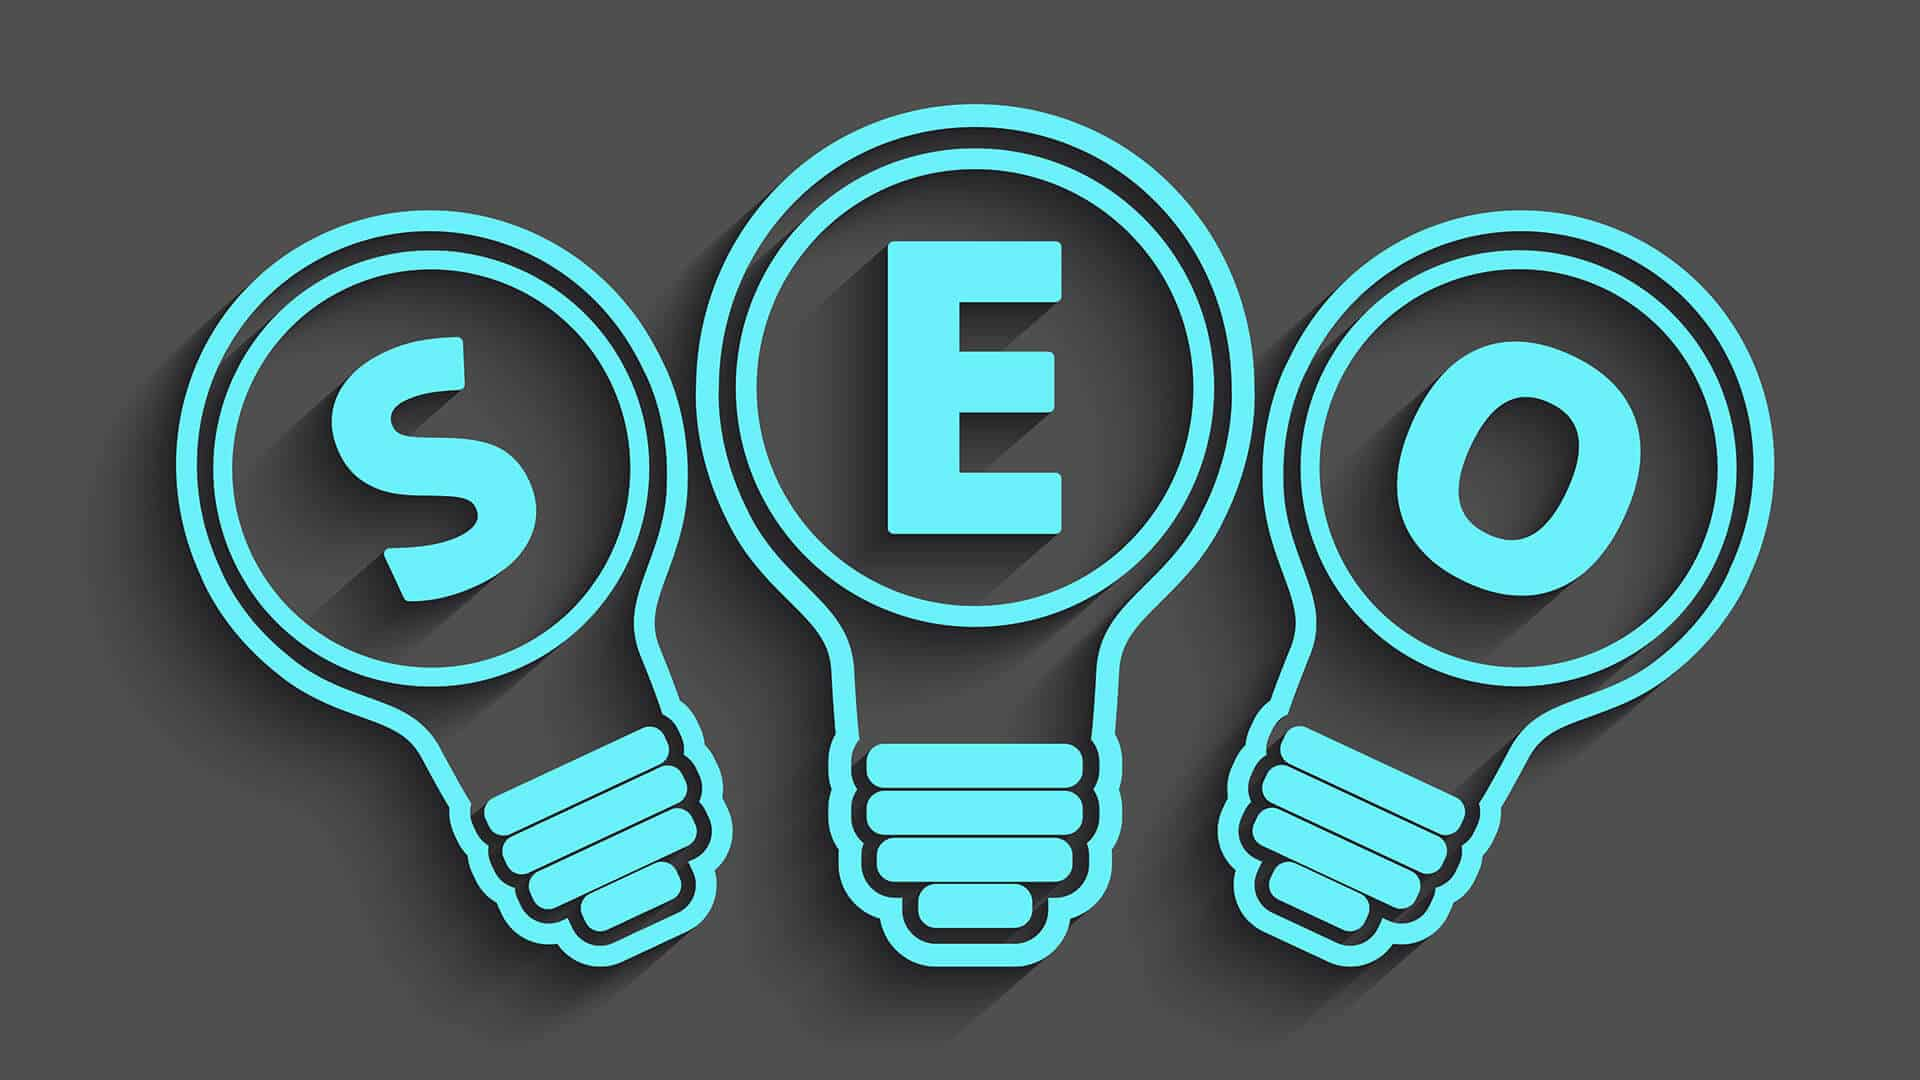 SEO- It's significance & impact